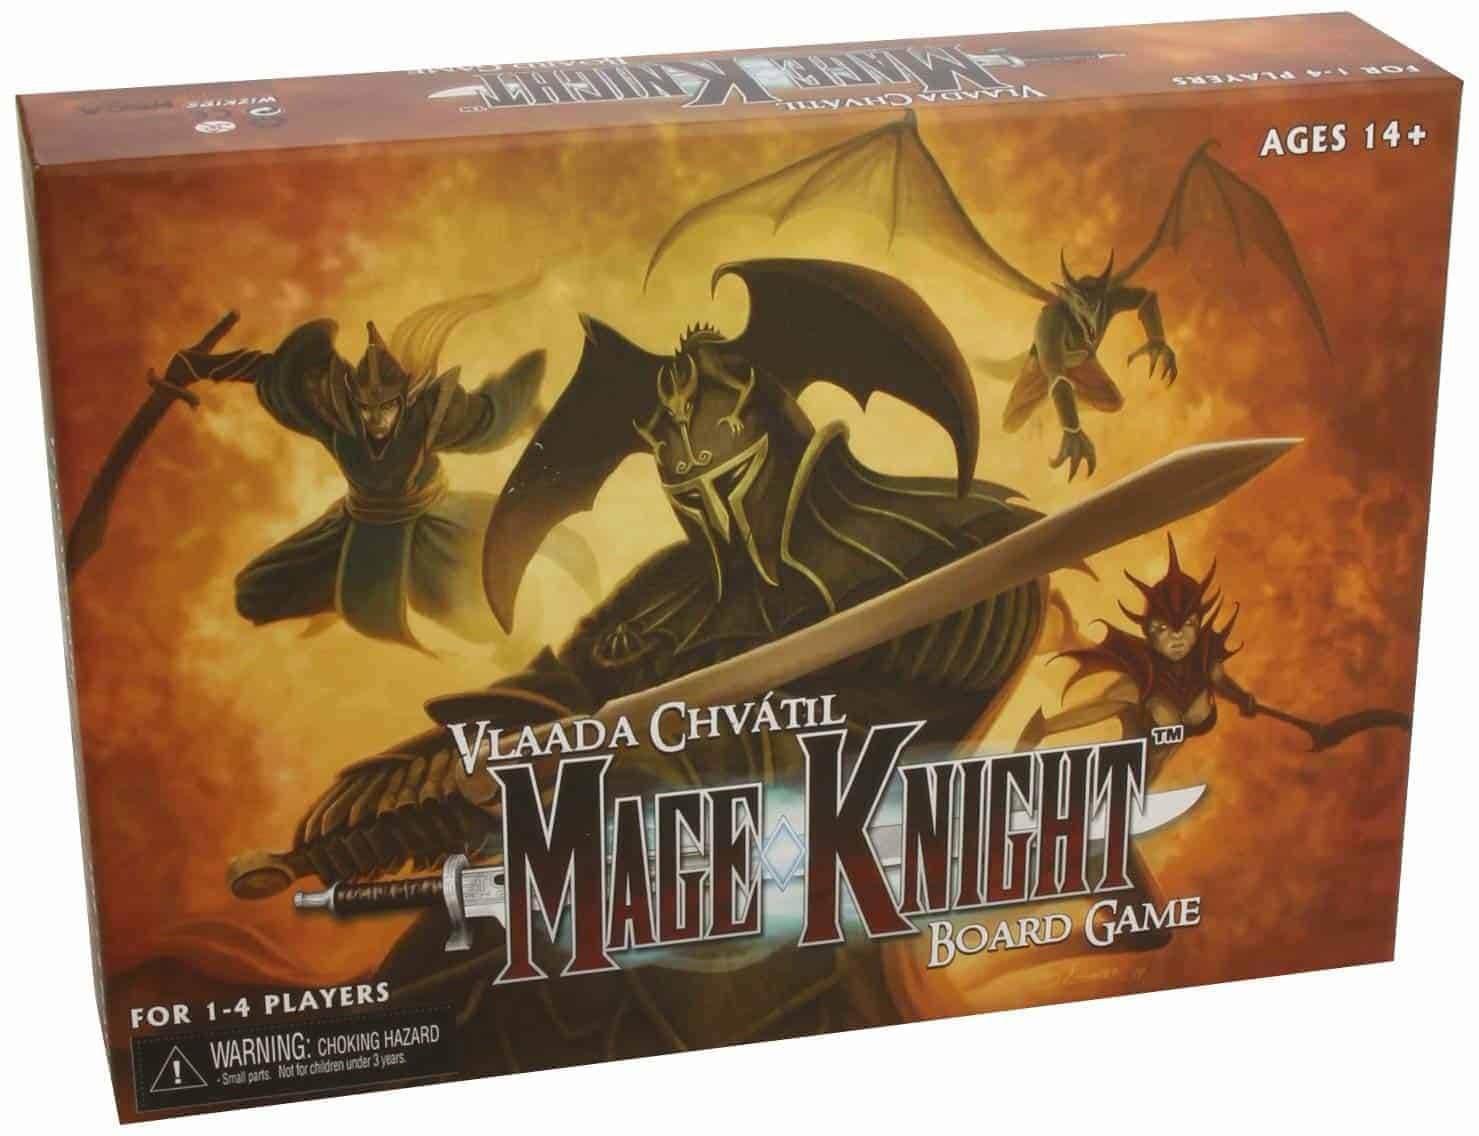 Mage Knight is one of the best RPG board games for a solo play. It has redefined what an RPG board game is and still remains a solid proposition.